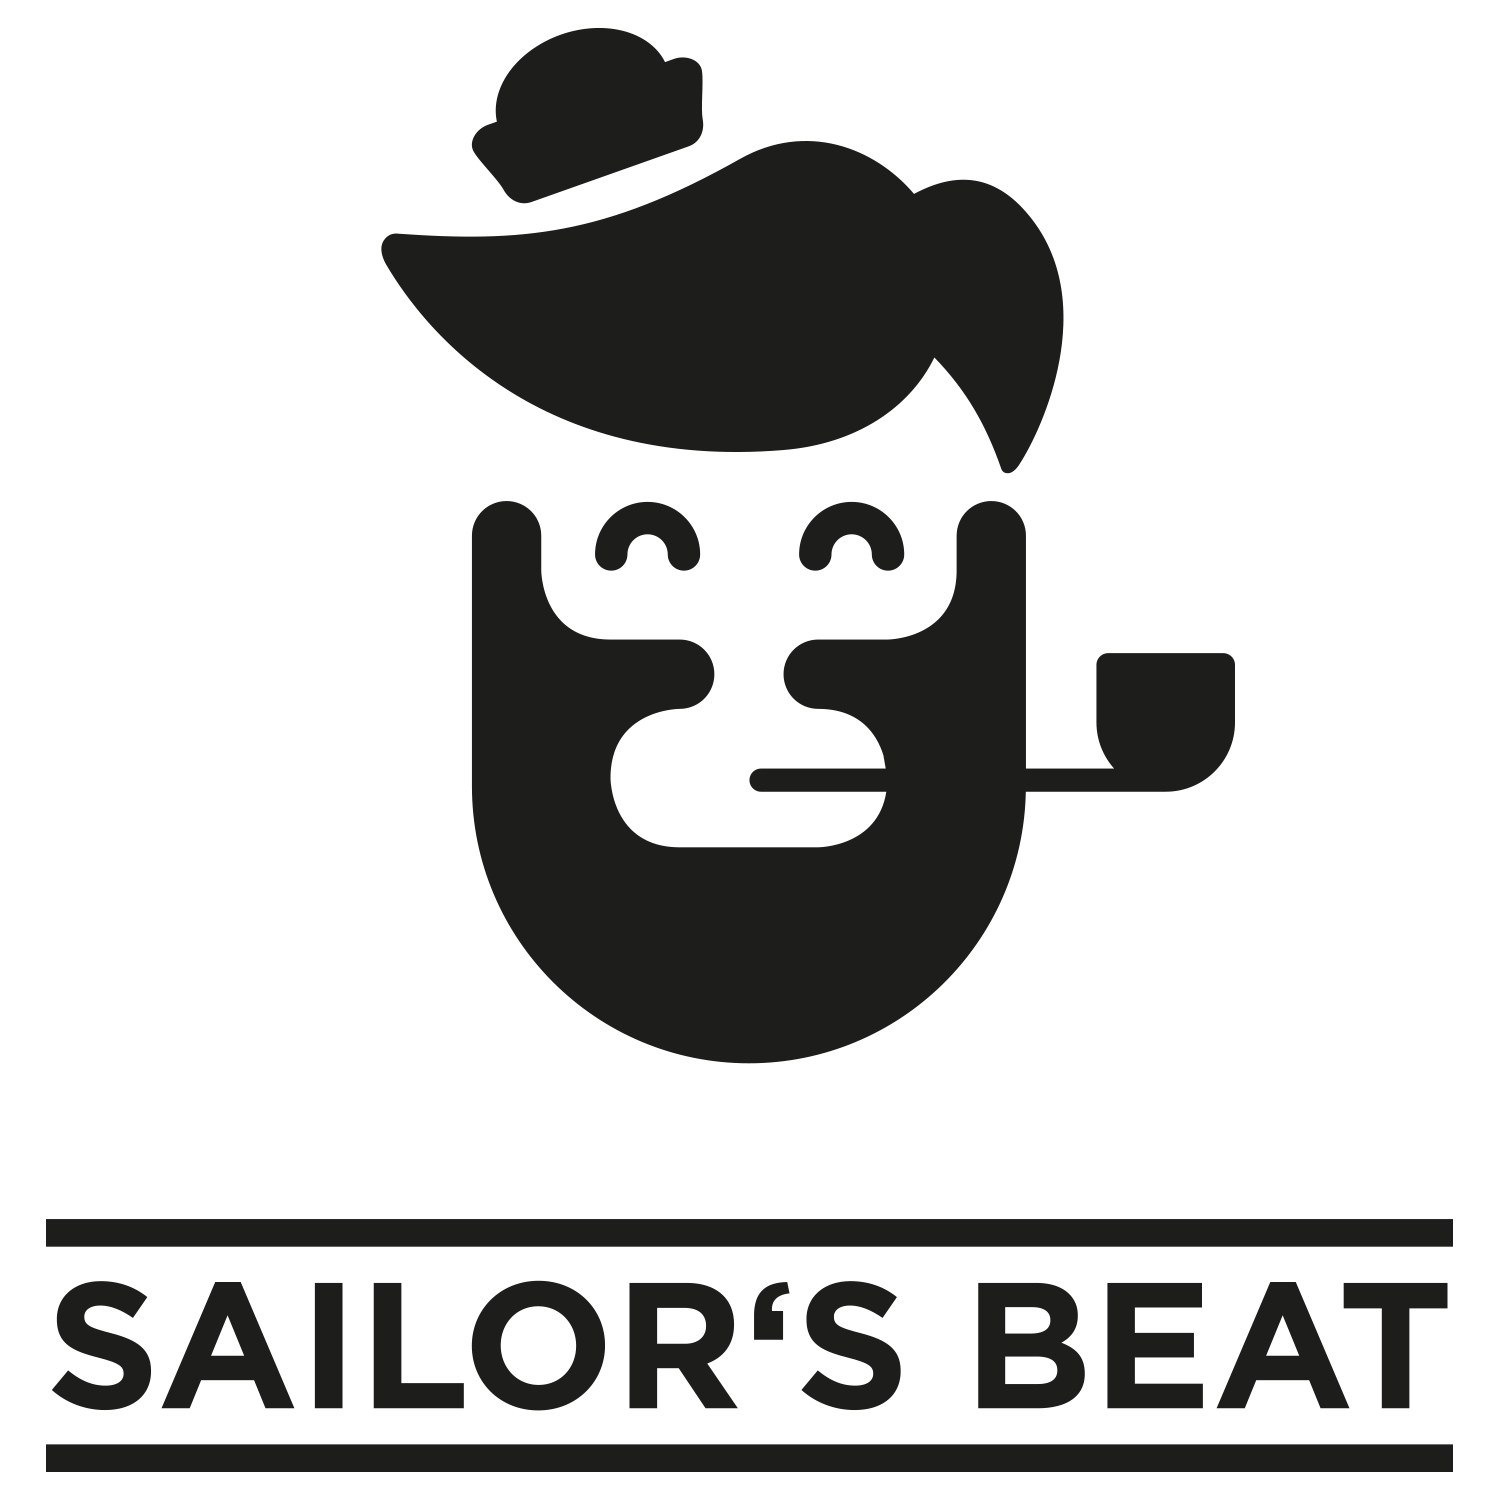 Sailor's Beat